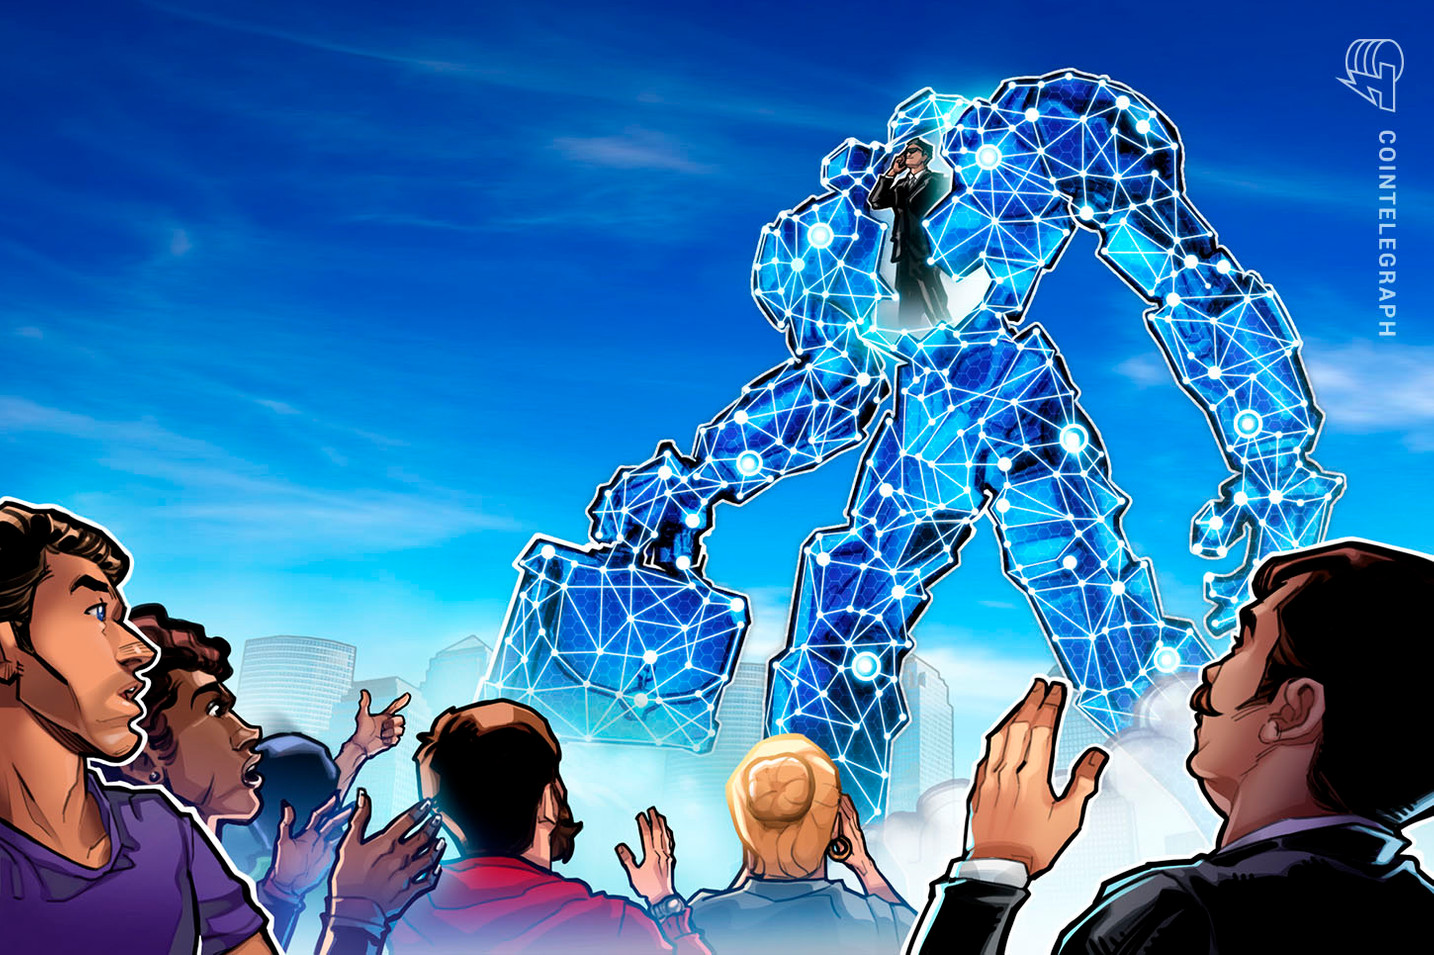 Major South Korea Tech Holding and ConsenSys Sign MoU to Develop Blockchain Business Hub